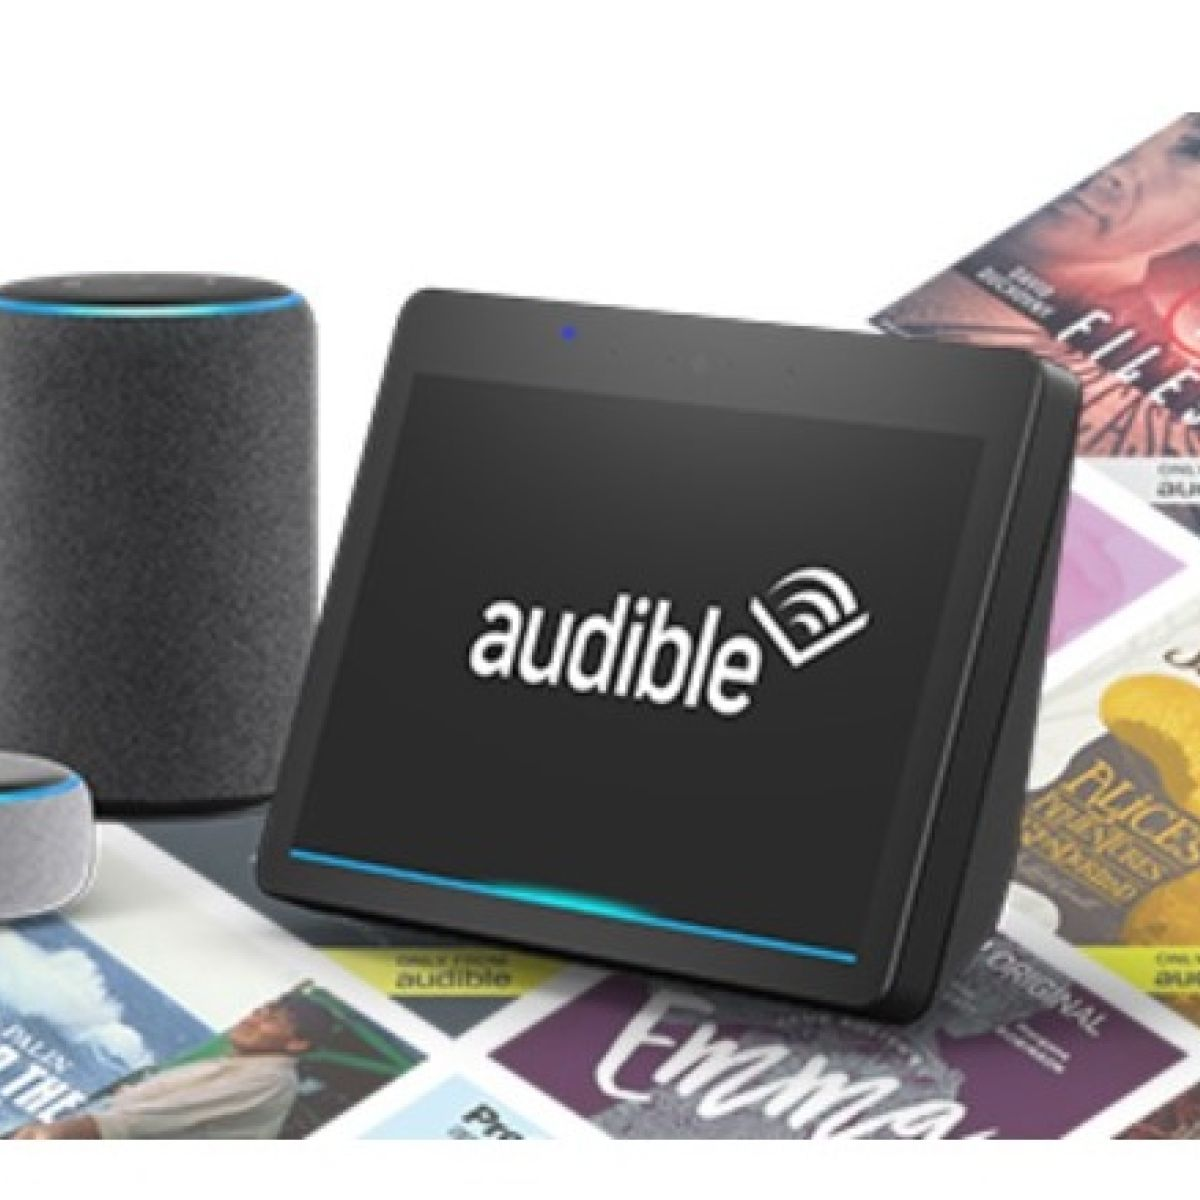 Audible Account Sharing alexa, what's the story? amazon's new free audiobook offer